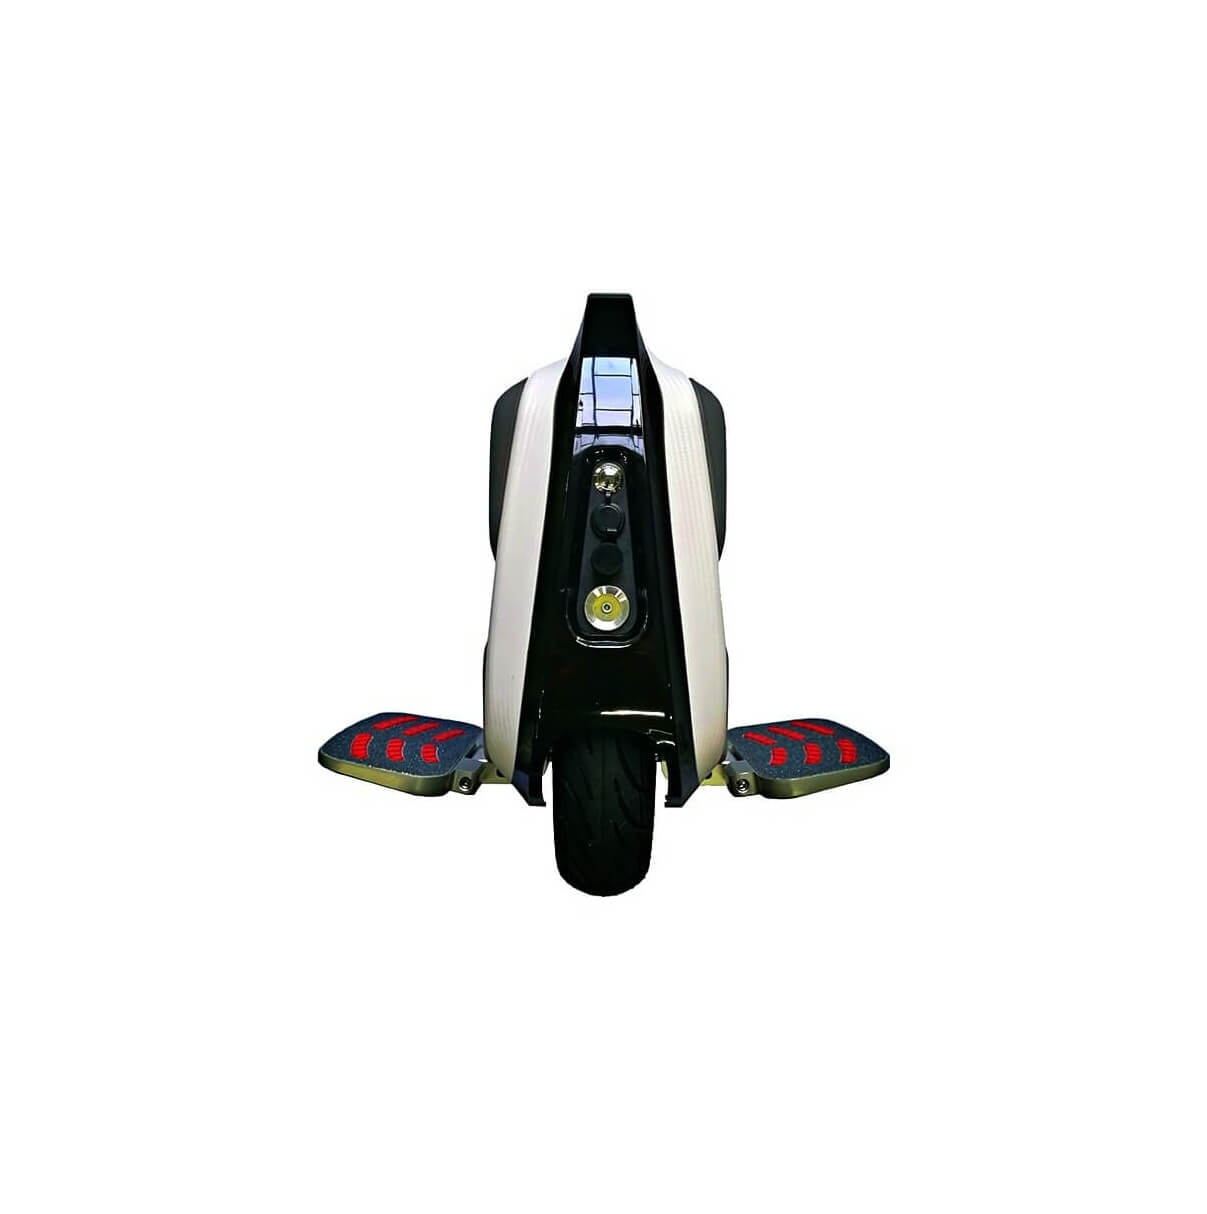 gotway mten3 10 inch electric unicycle with head light